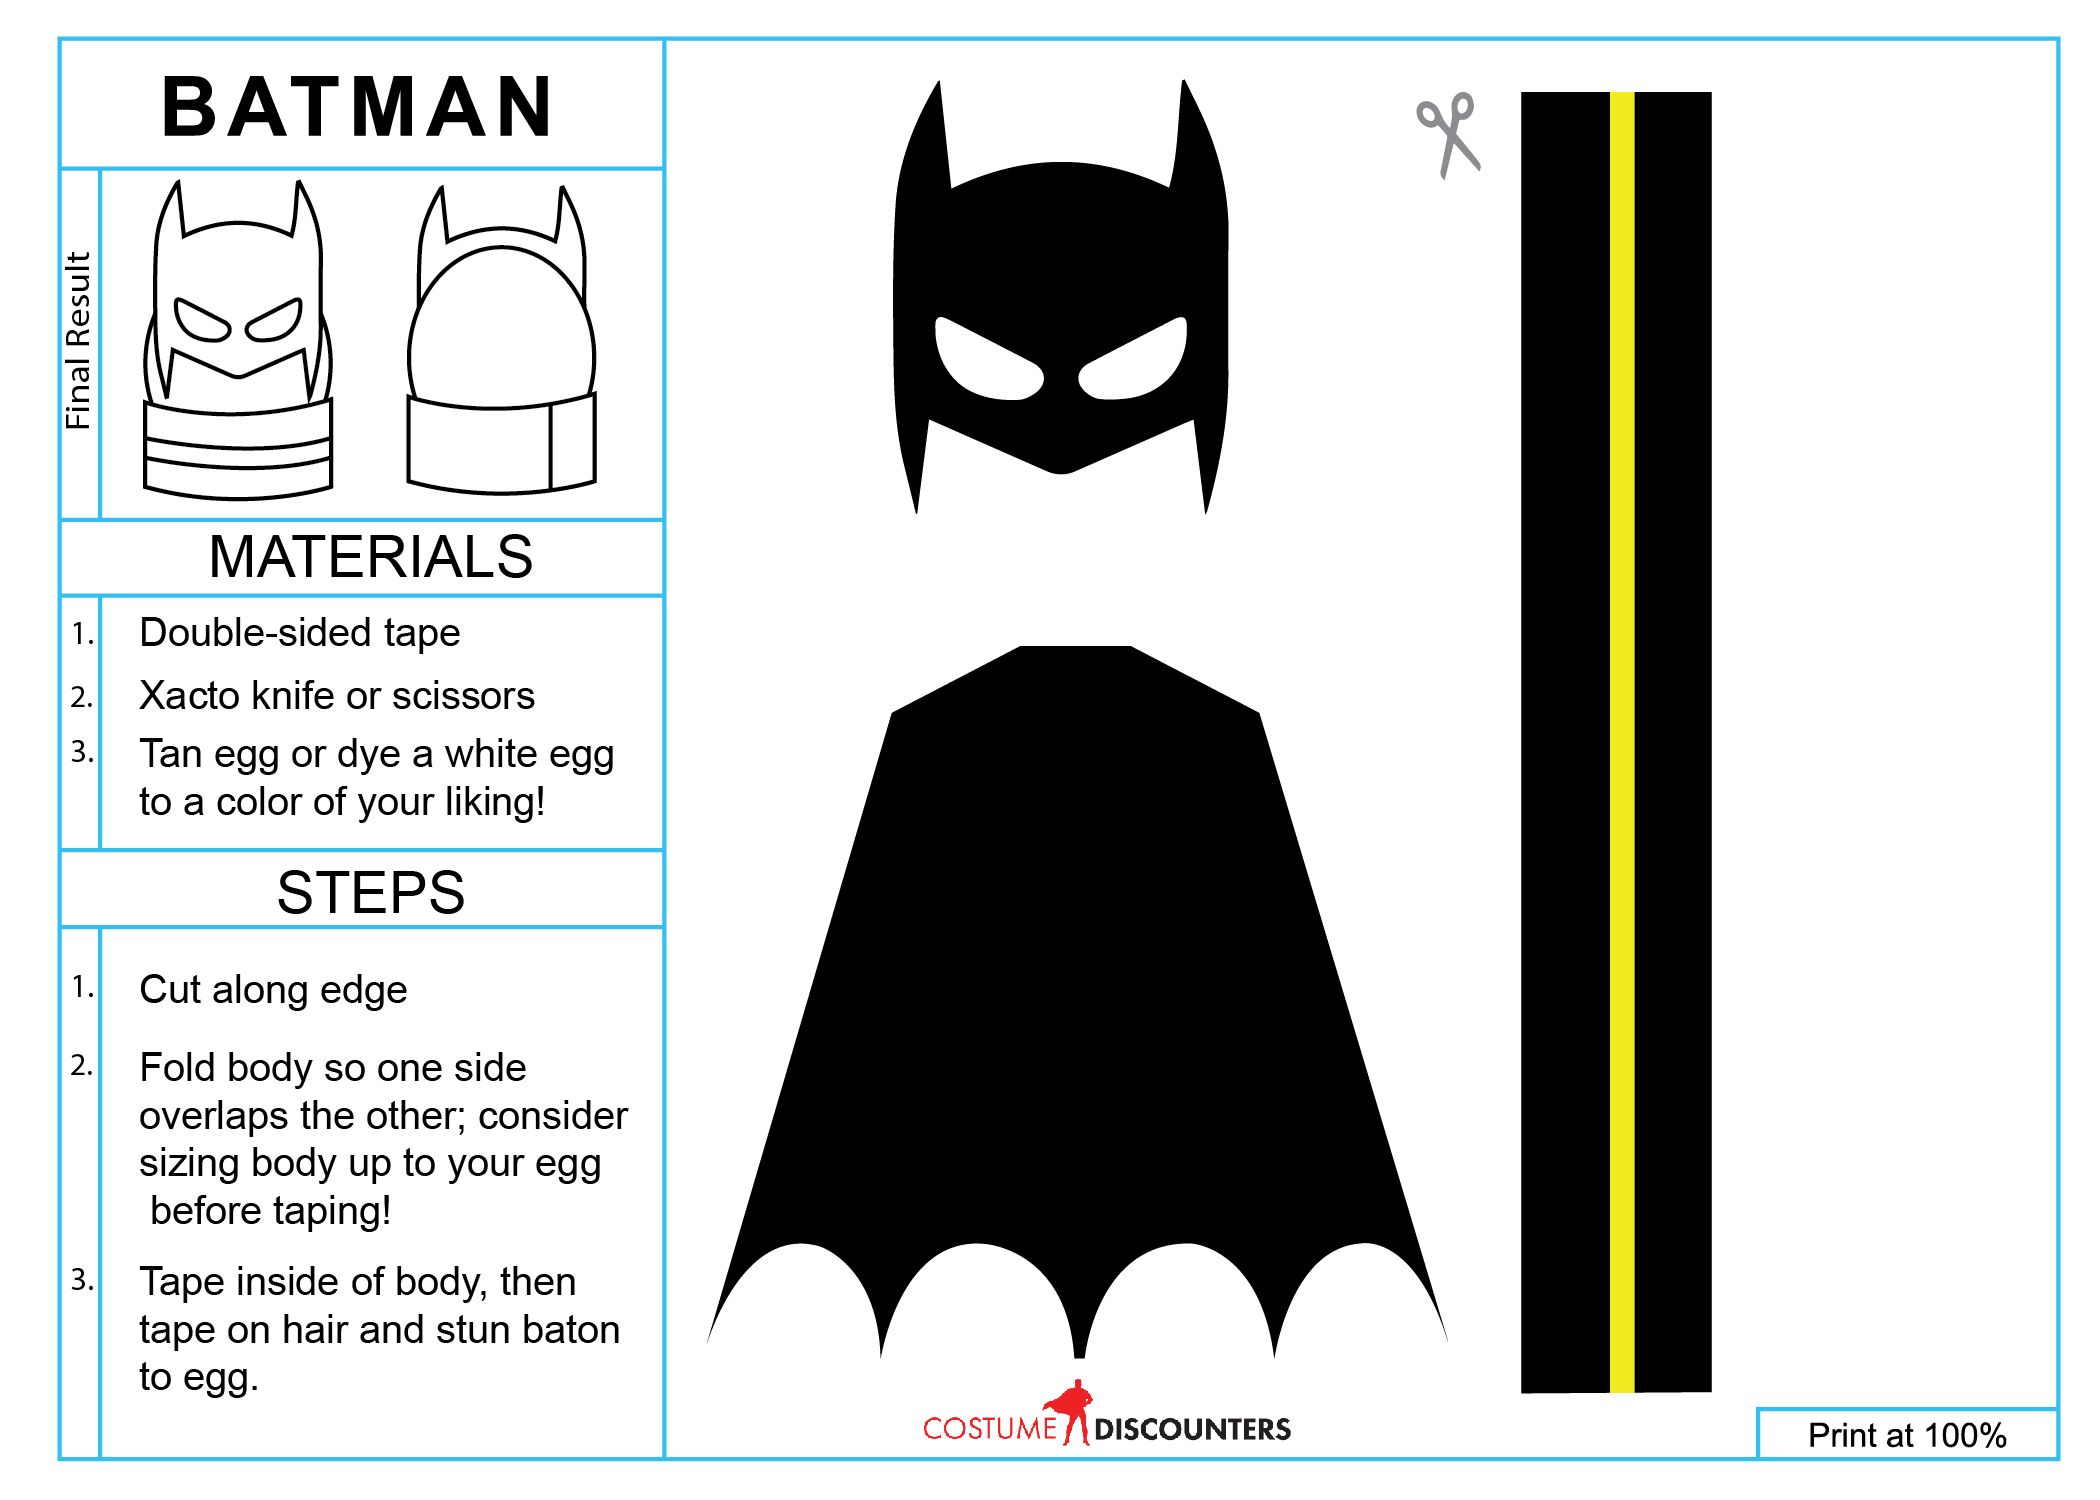 Dawn Of Just Eggs Easter Egg Costumes Printable Easter Egg Costume Batman Easter Basket Easter Eggs